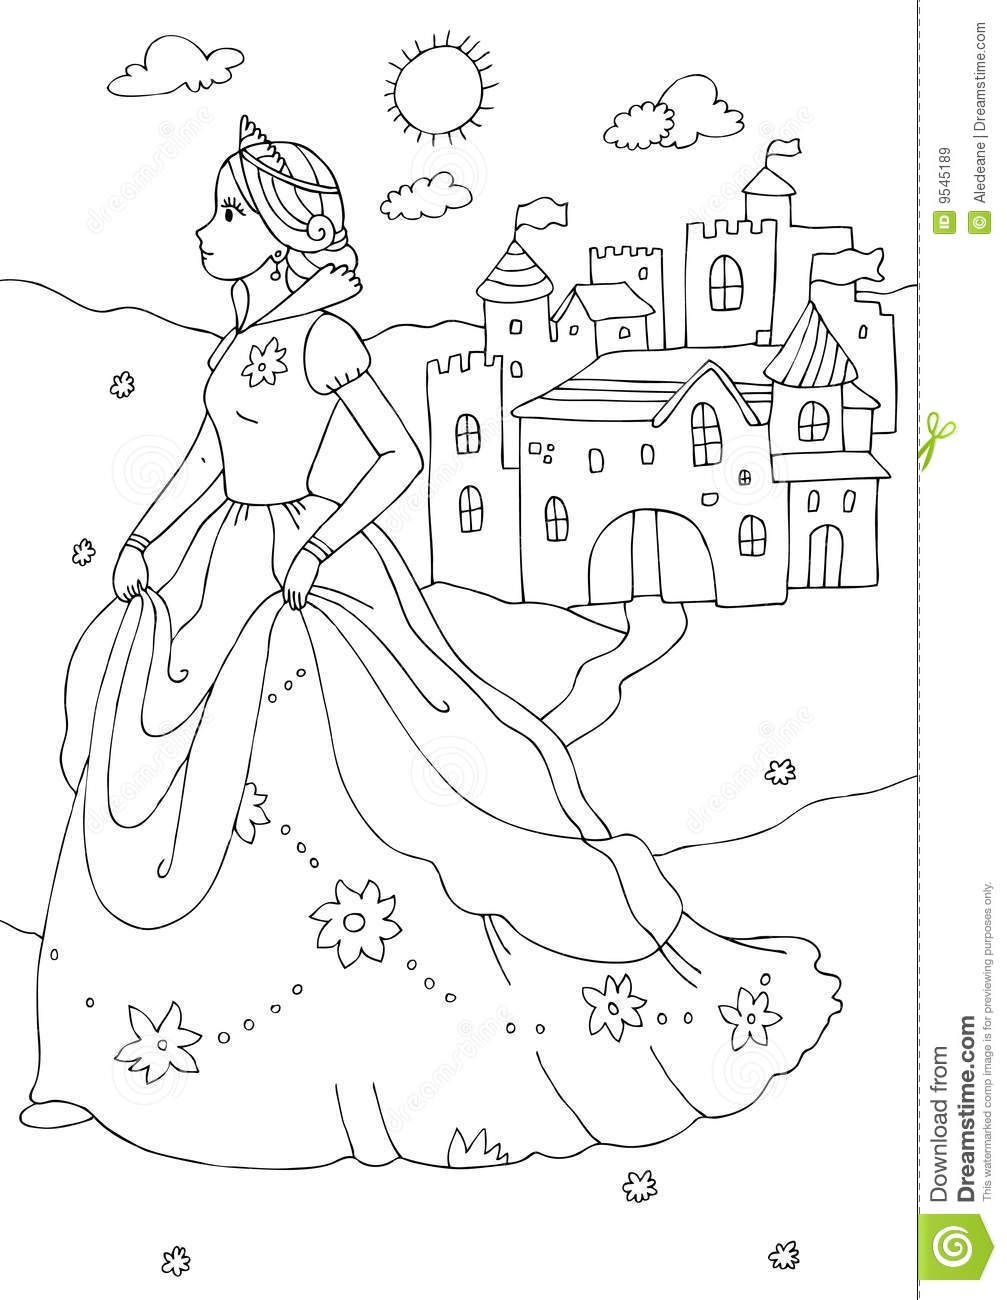 Princess Castle Coloring Page 9545189 Jpg 1007 1300 Castle